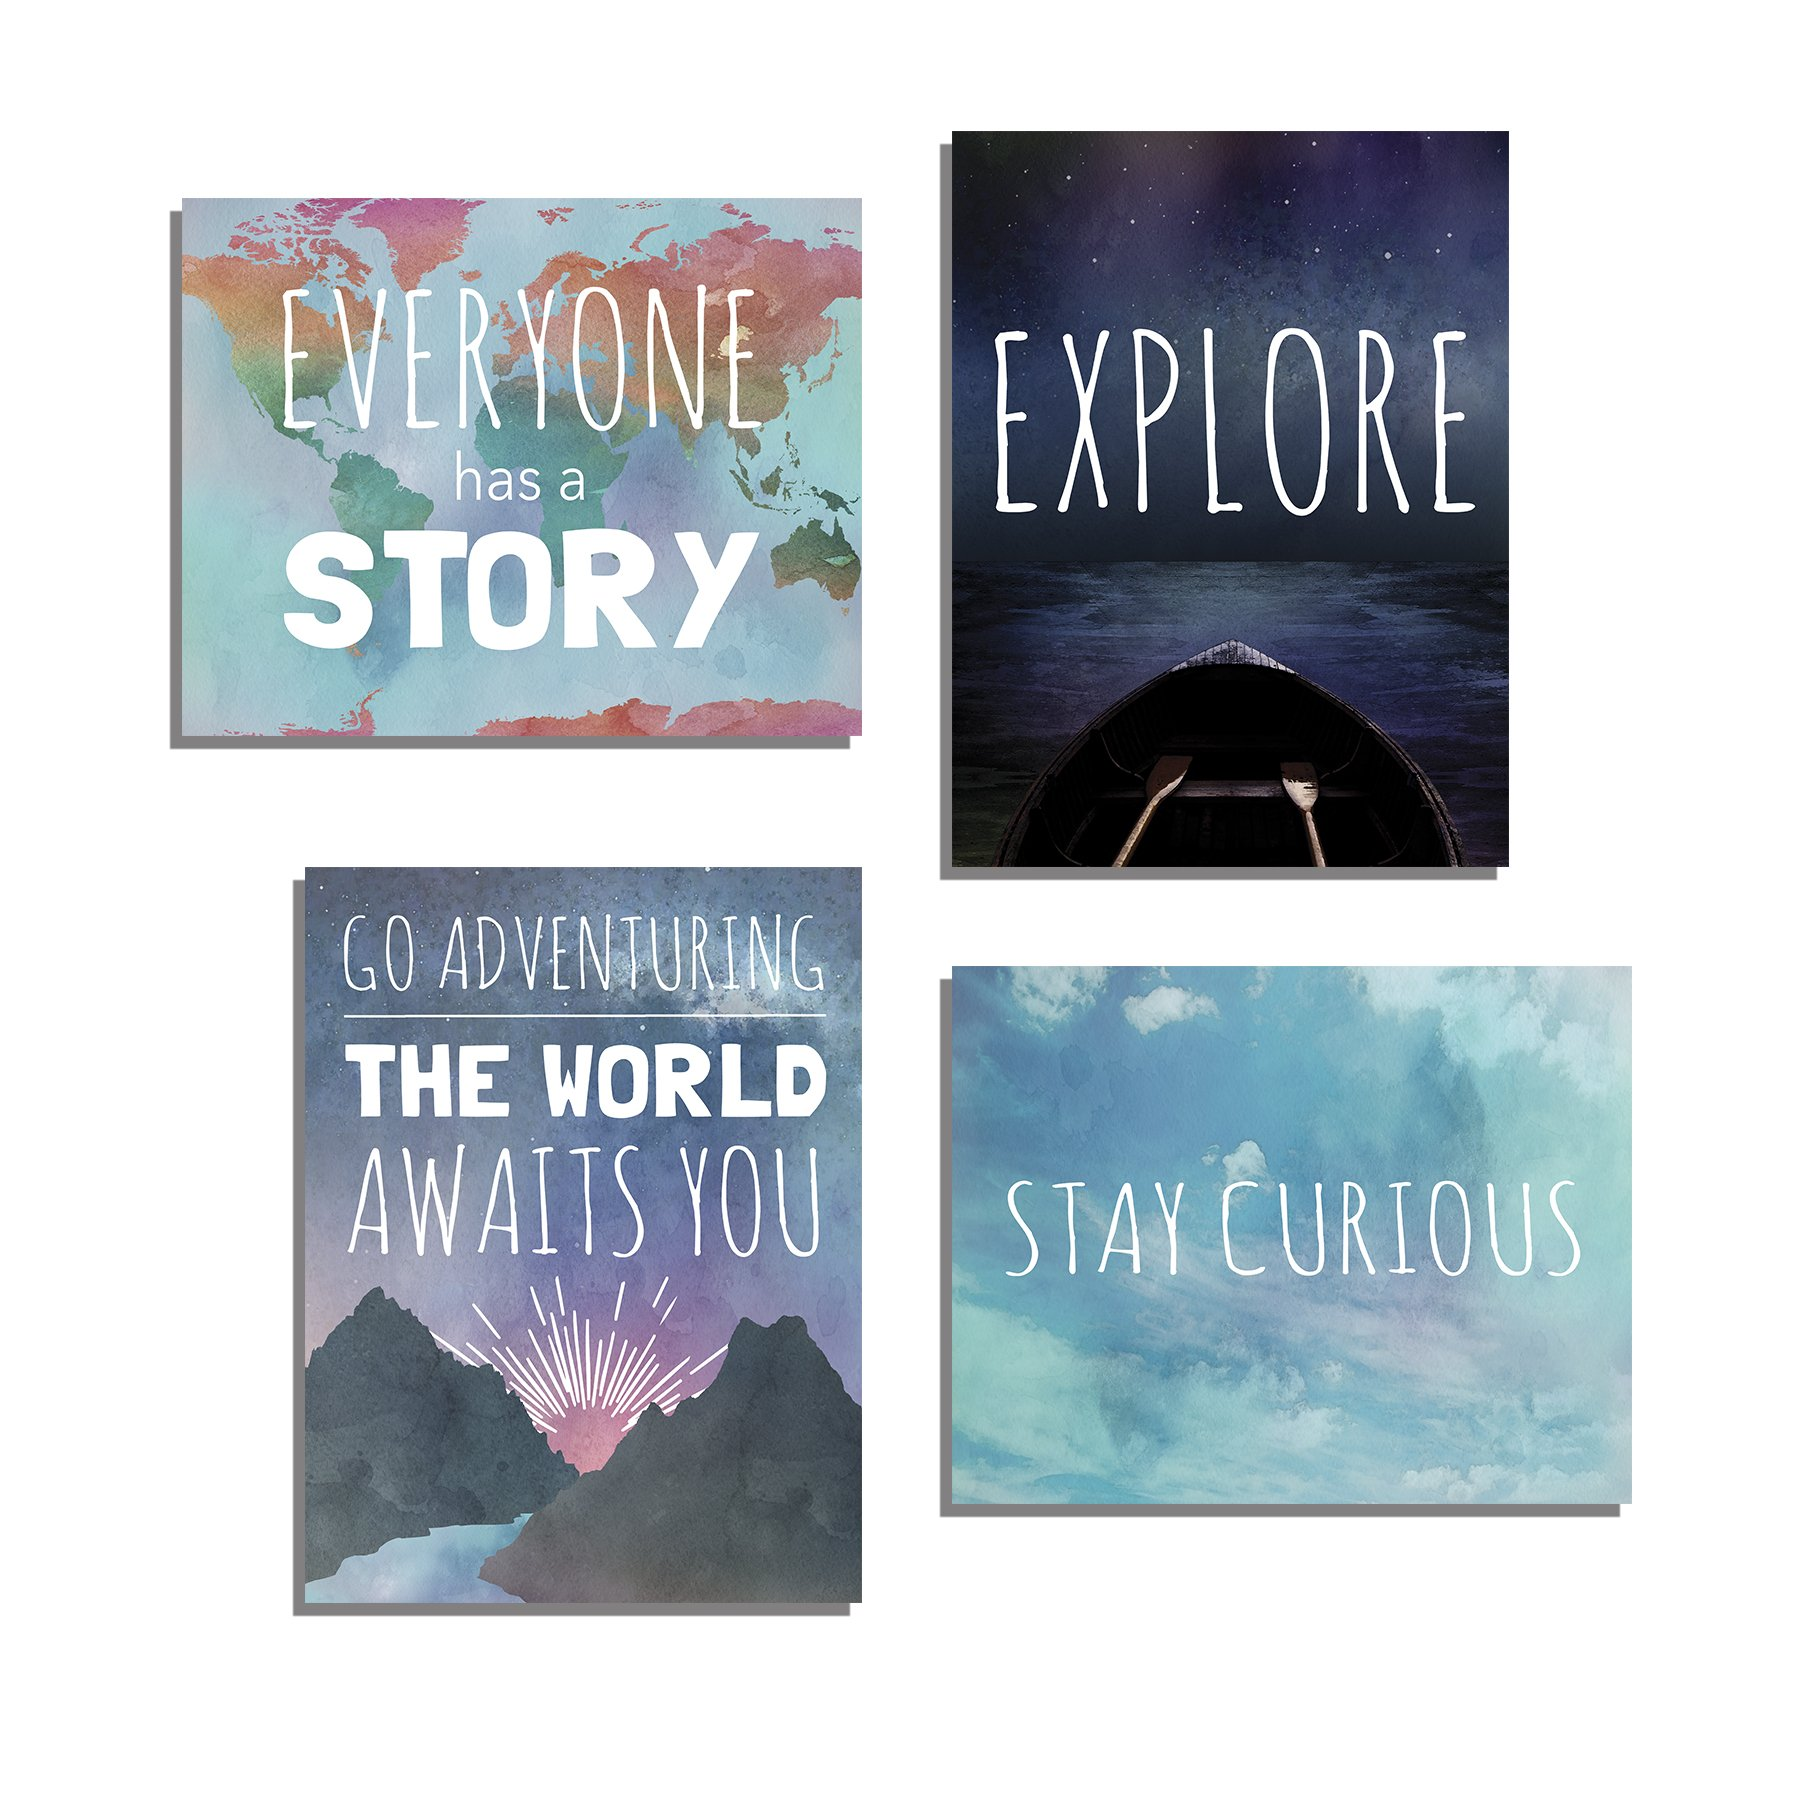 Explore Collection of Four 11x14 Wall Art Prints, Typography, Nursery Decor, Kid's Wall Art Print, Kid's Room Decor, Gender Neutral, Motivational Word Art, Inspirational Decor for Kids, Playroom Decor by Children Inspire Design (Image #1)